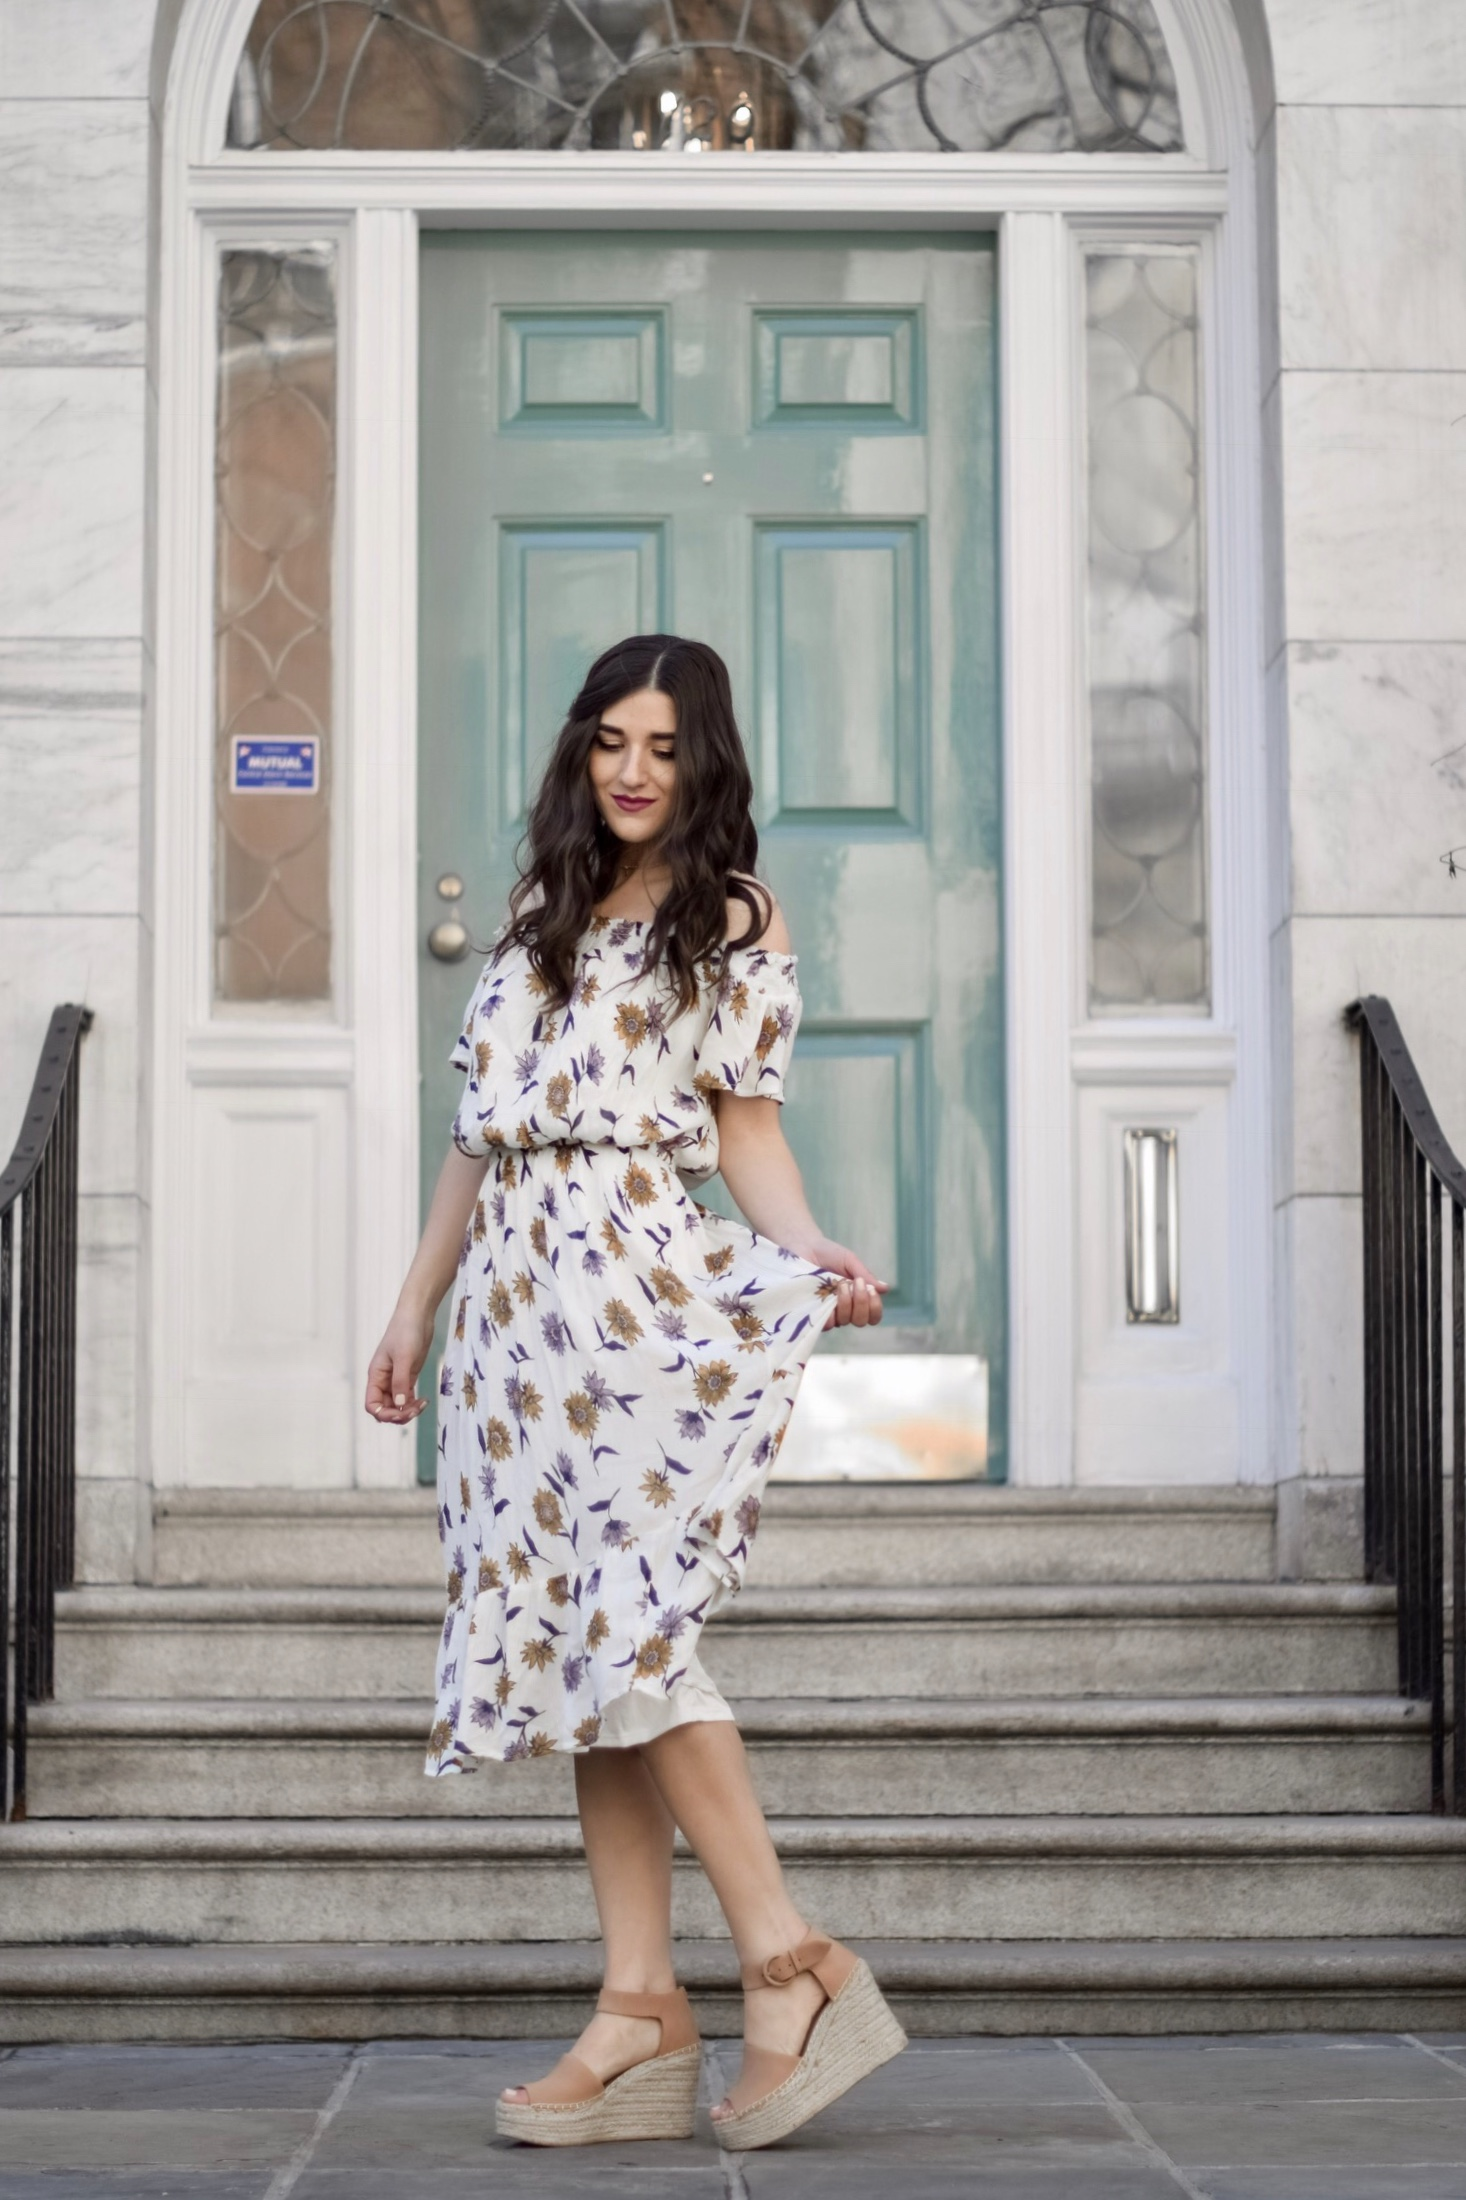 bf2ff66c6d47 Floral Cold Shoulder Maxi Dress + Espadrille Wedges    My Top 3 Rules Of  Business